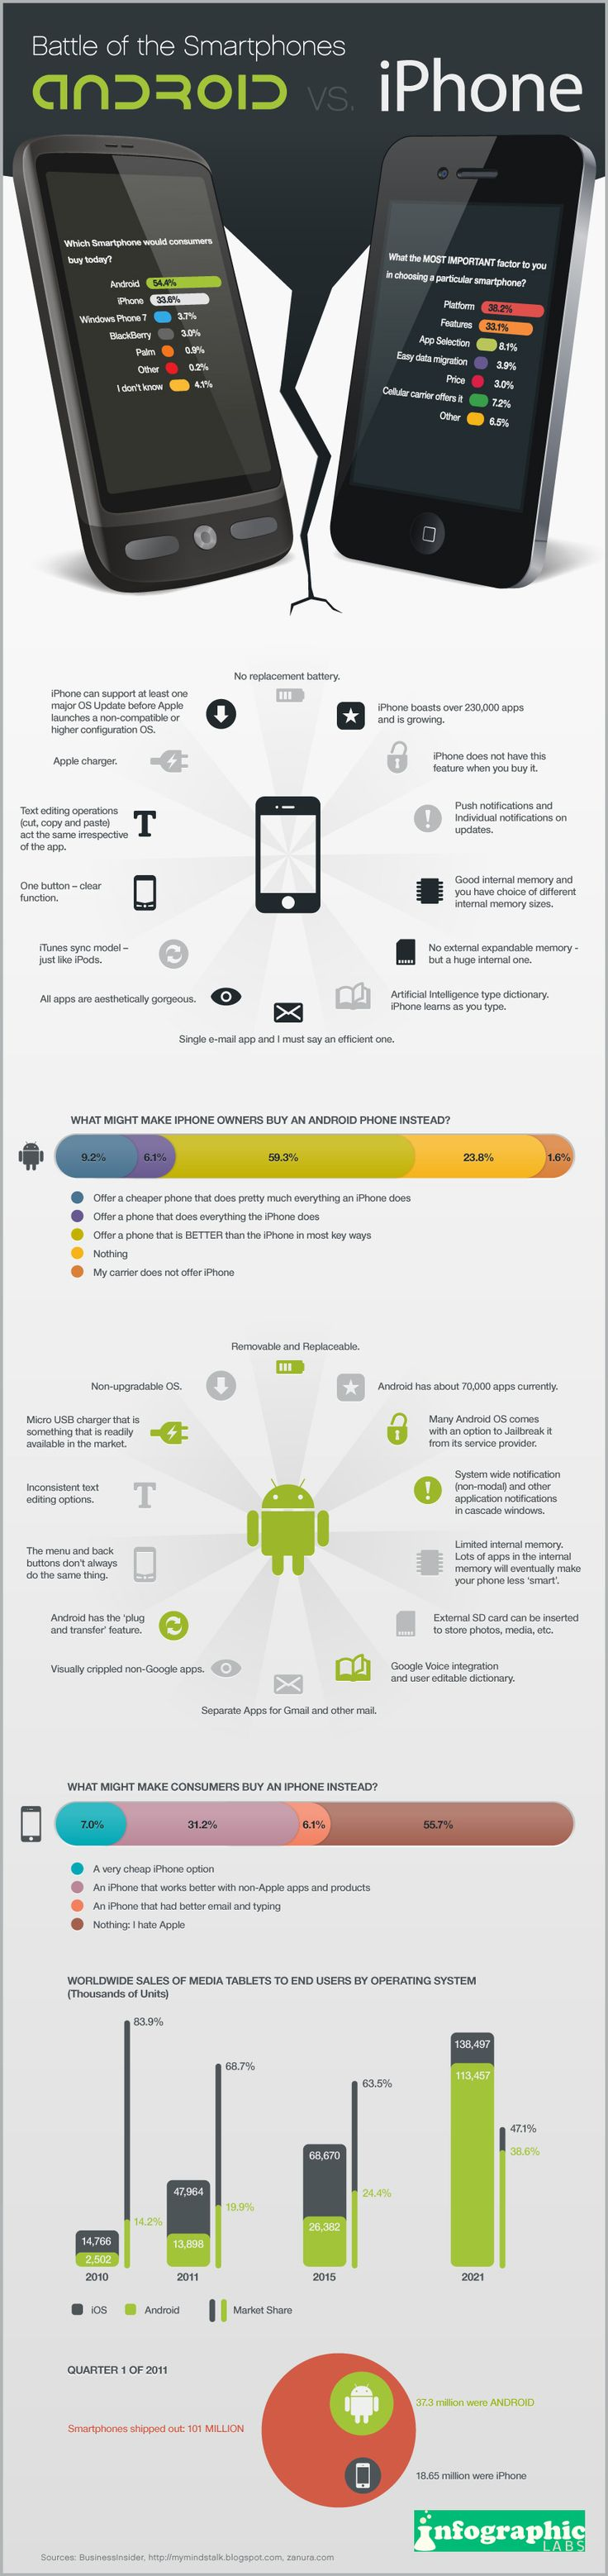 Android vs iPhone: a good talking point for students to discuss their needs and wants from a phone to encourage them to research and make informed decisions